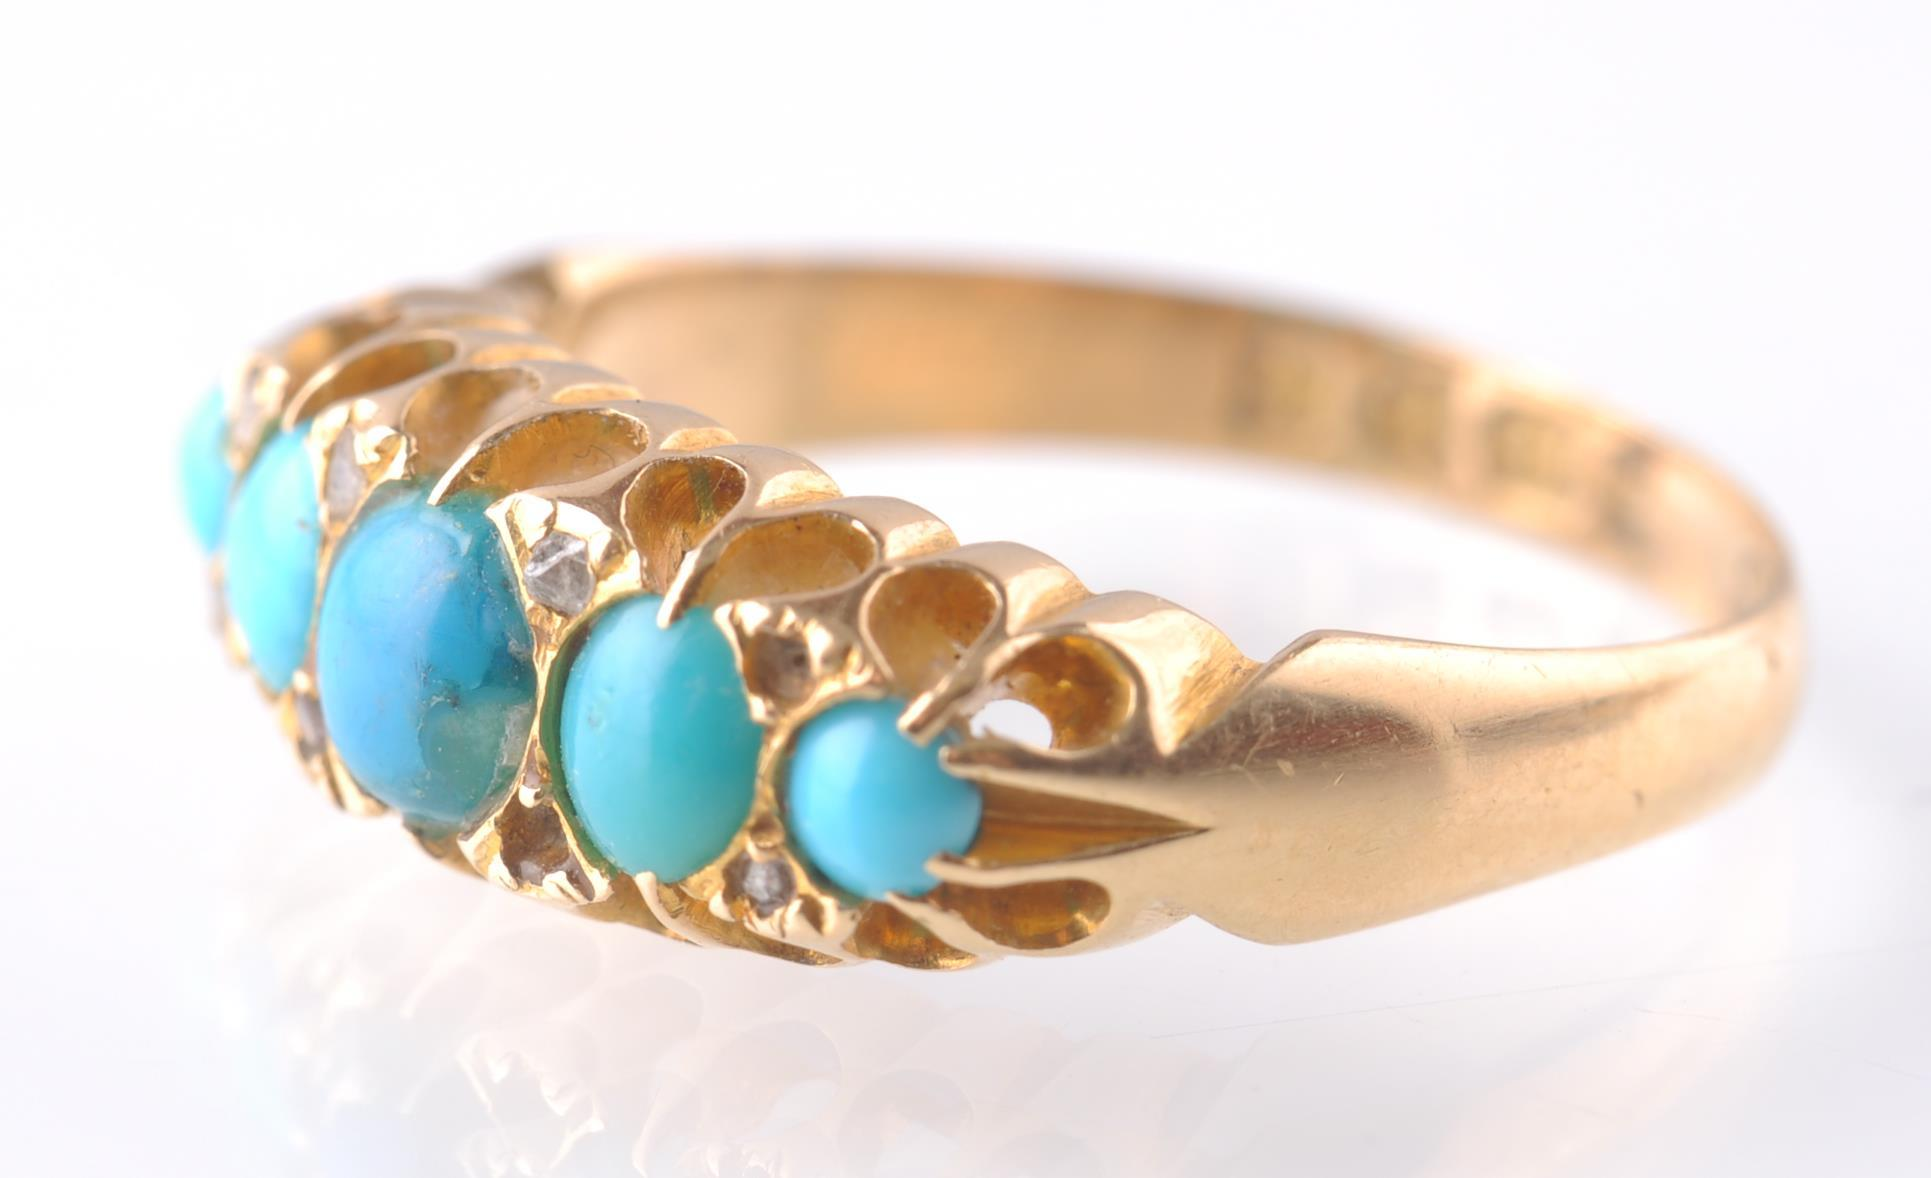 An 18CT GOLD & TURQUOISE GYPSY RING - 1915 - Image 2 of 4